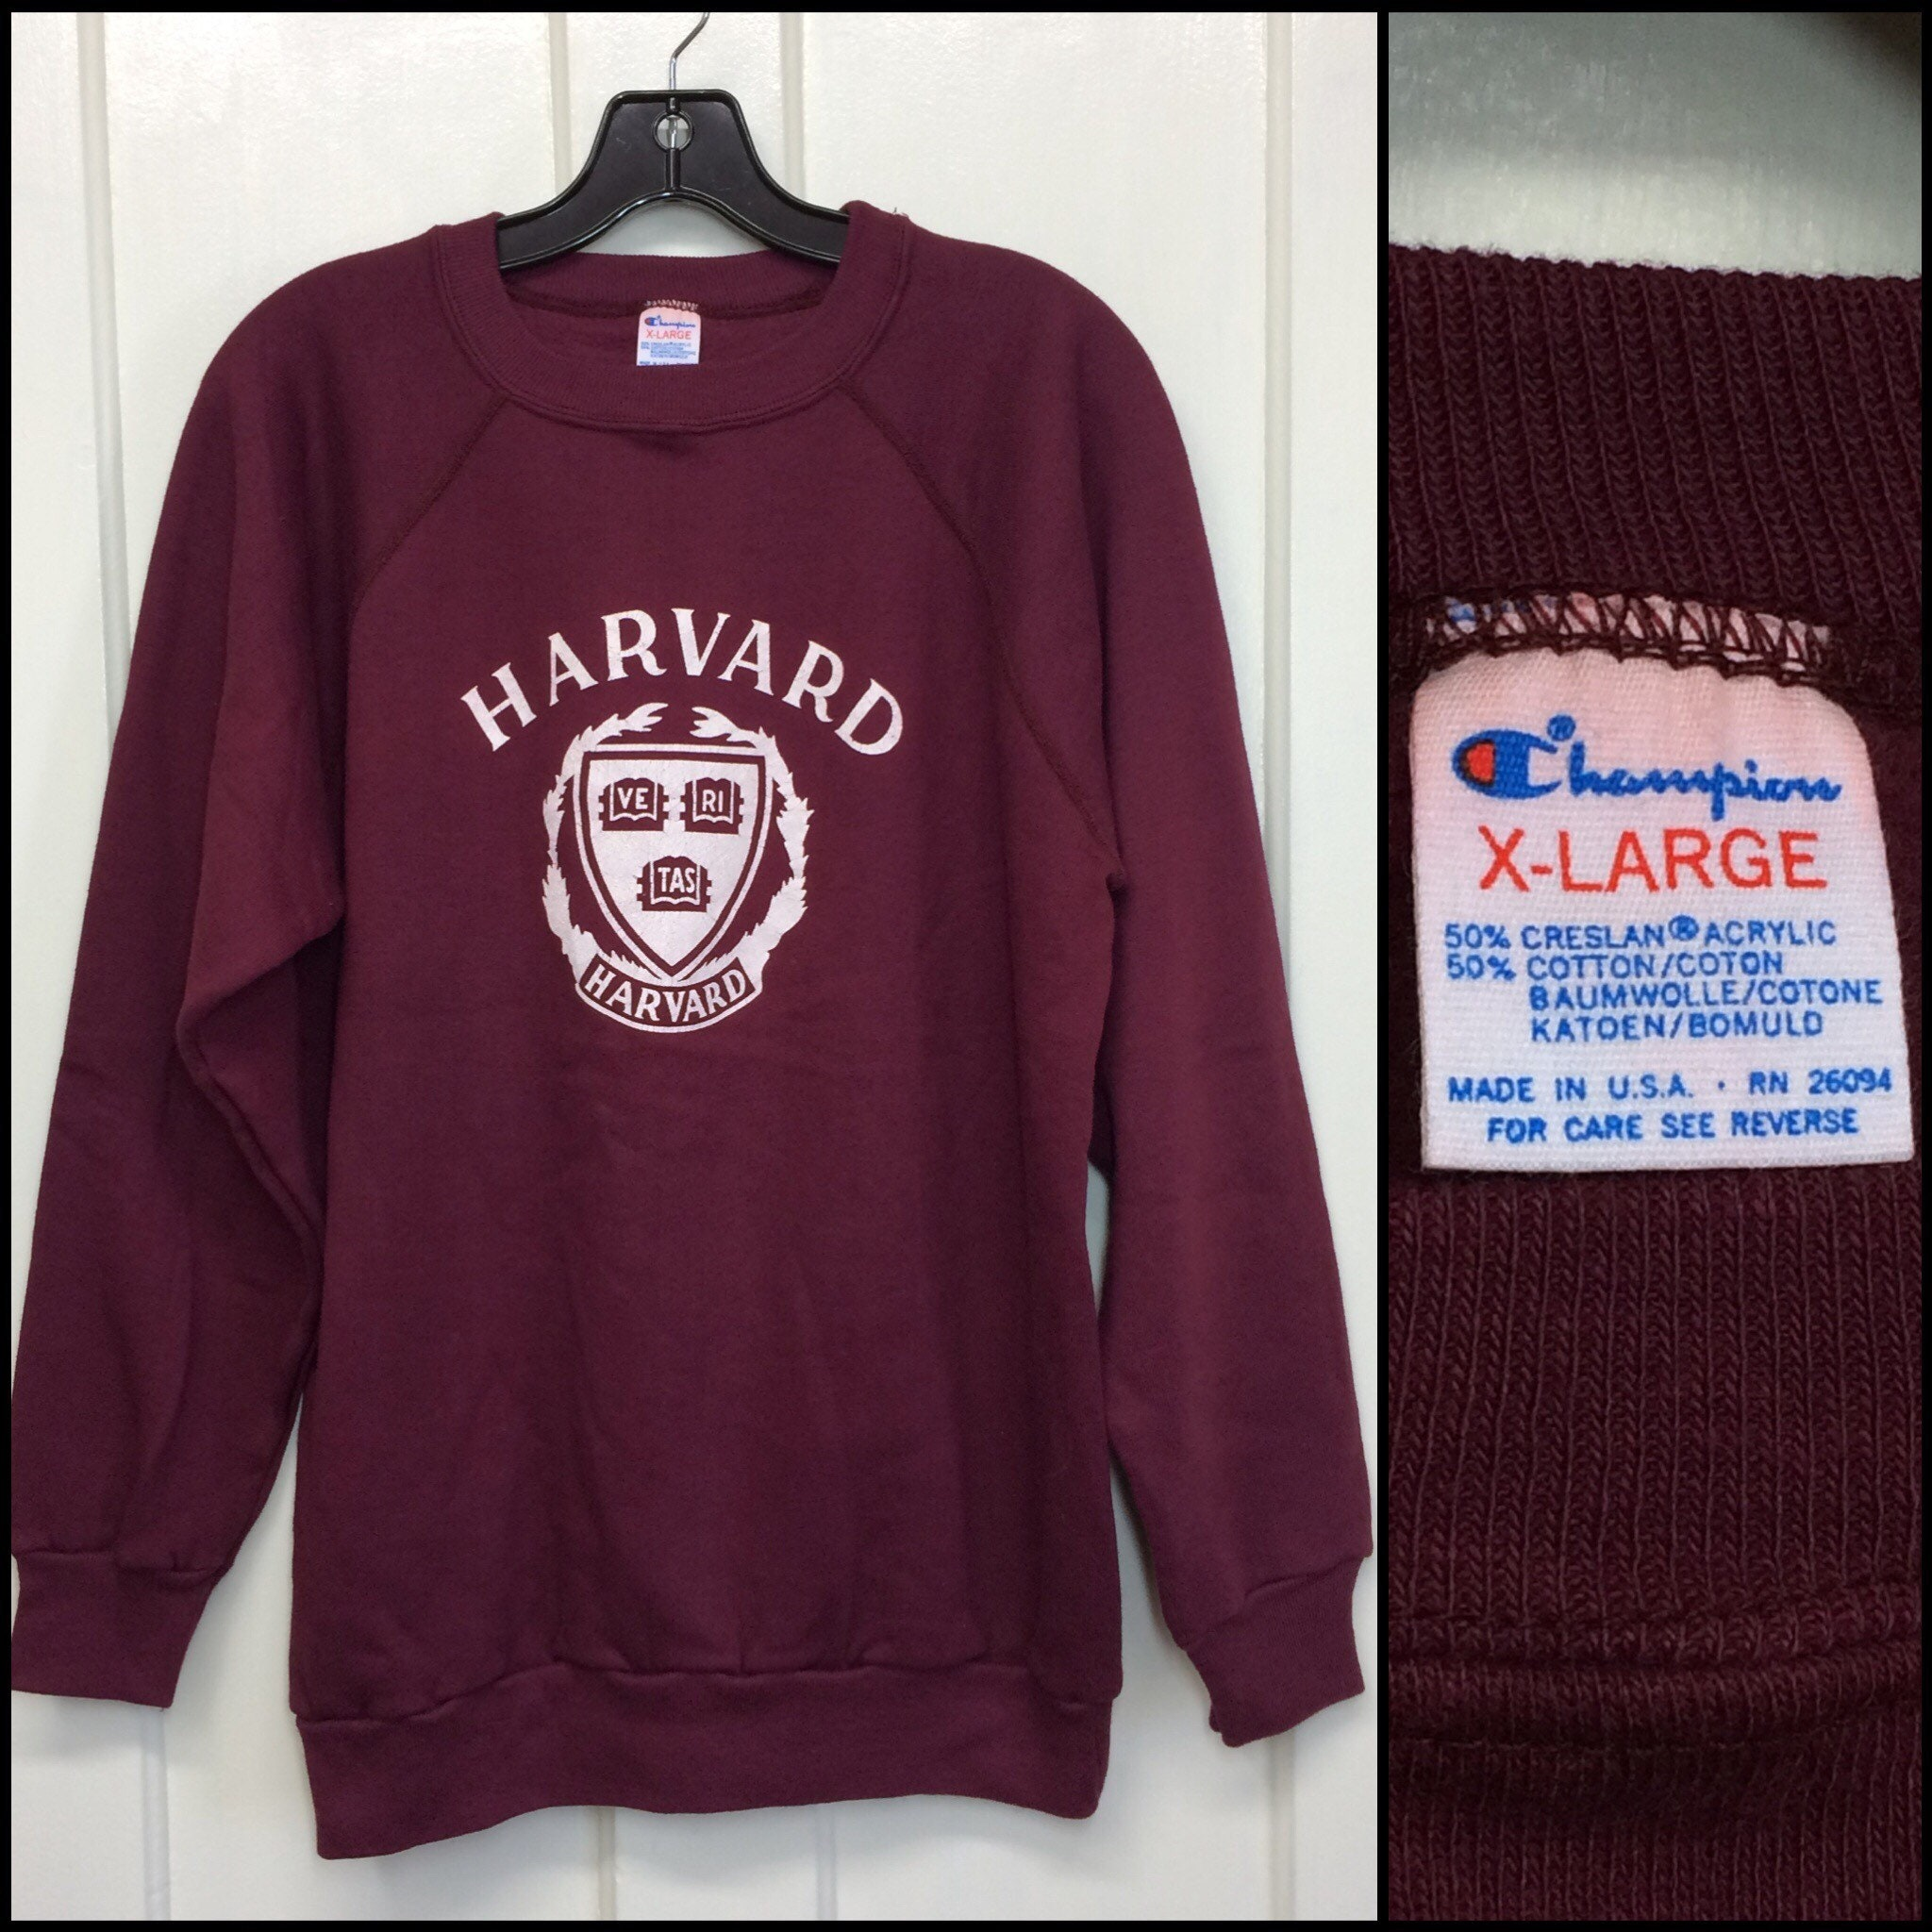 e50ad61d7a99 1980s Harvard University Ivy League college school emblem ...